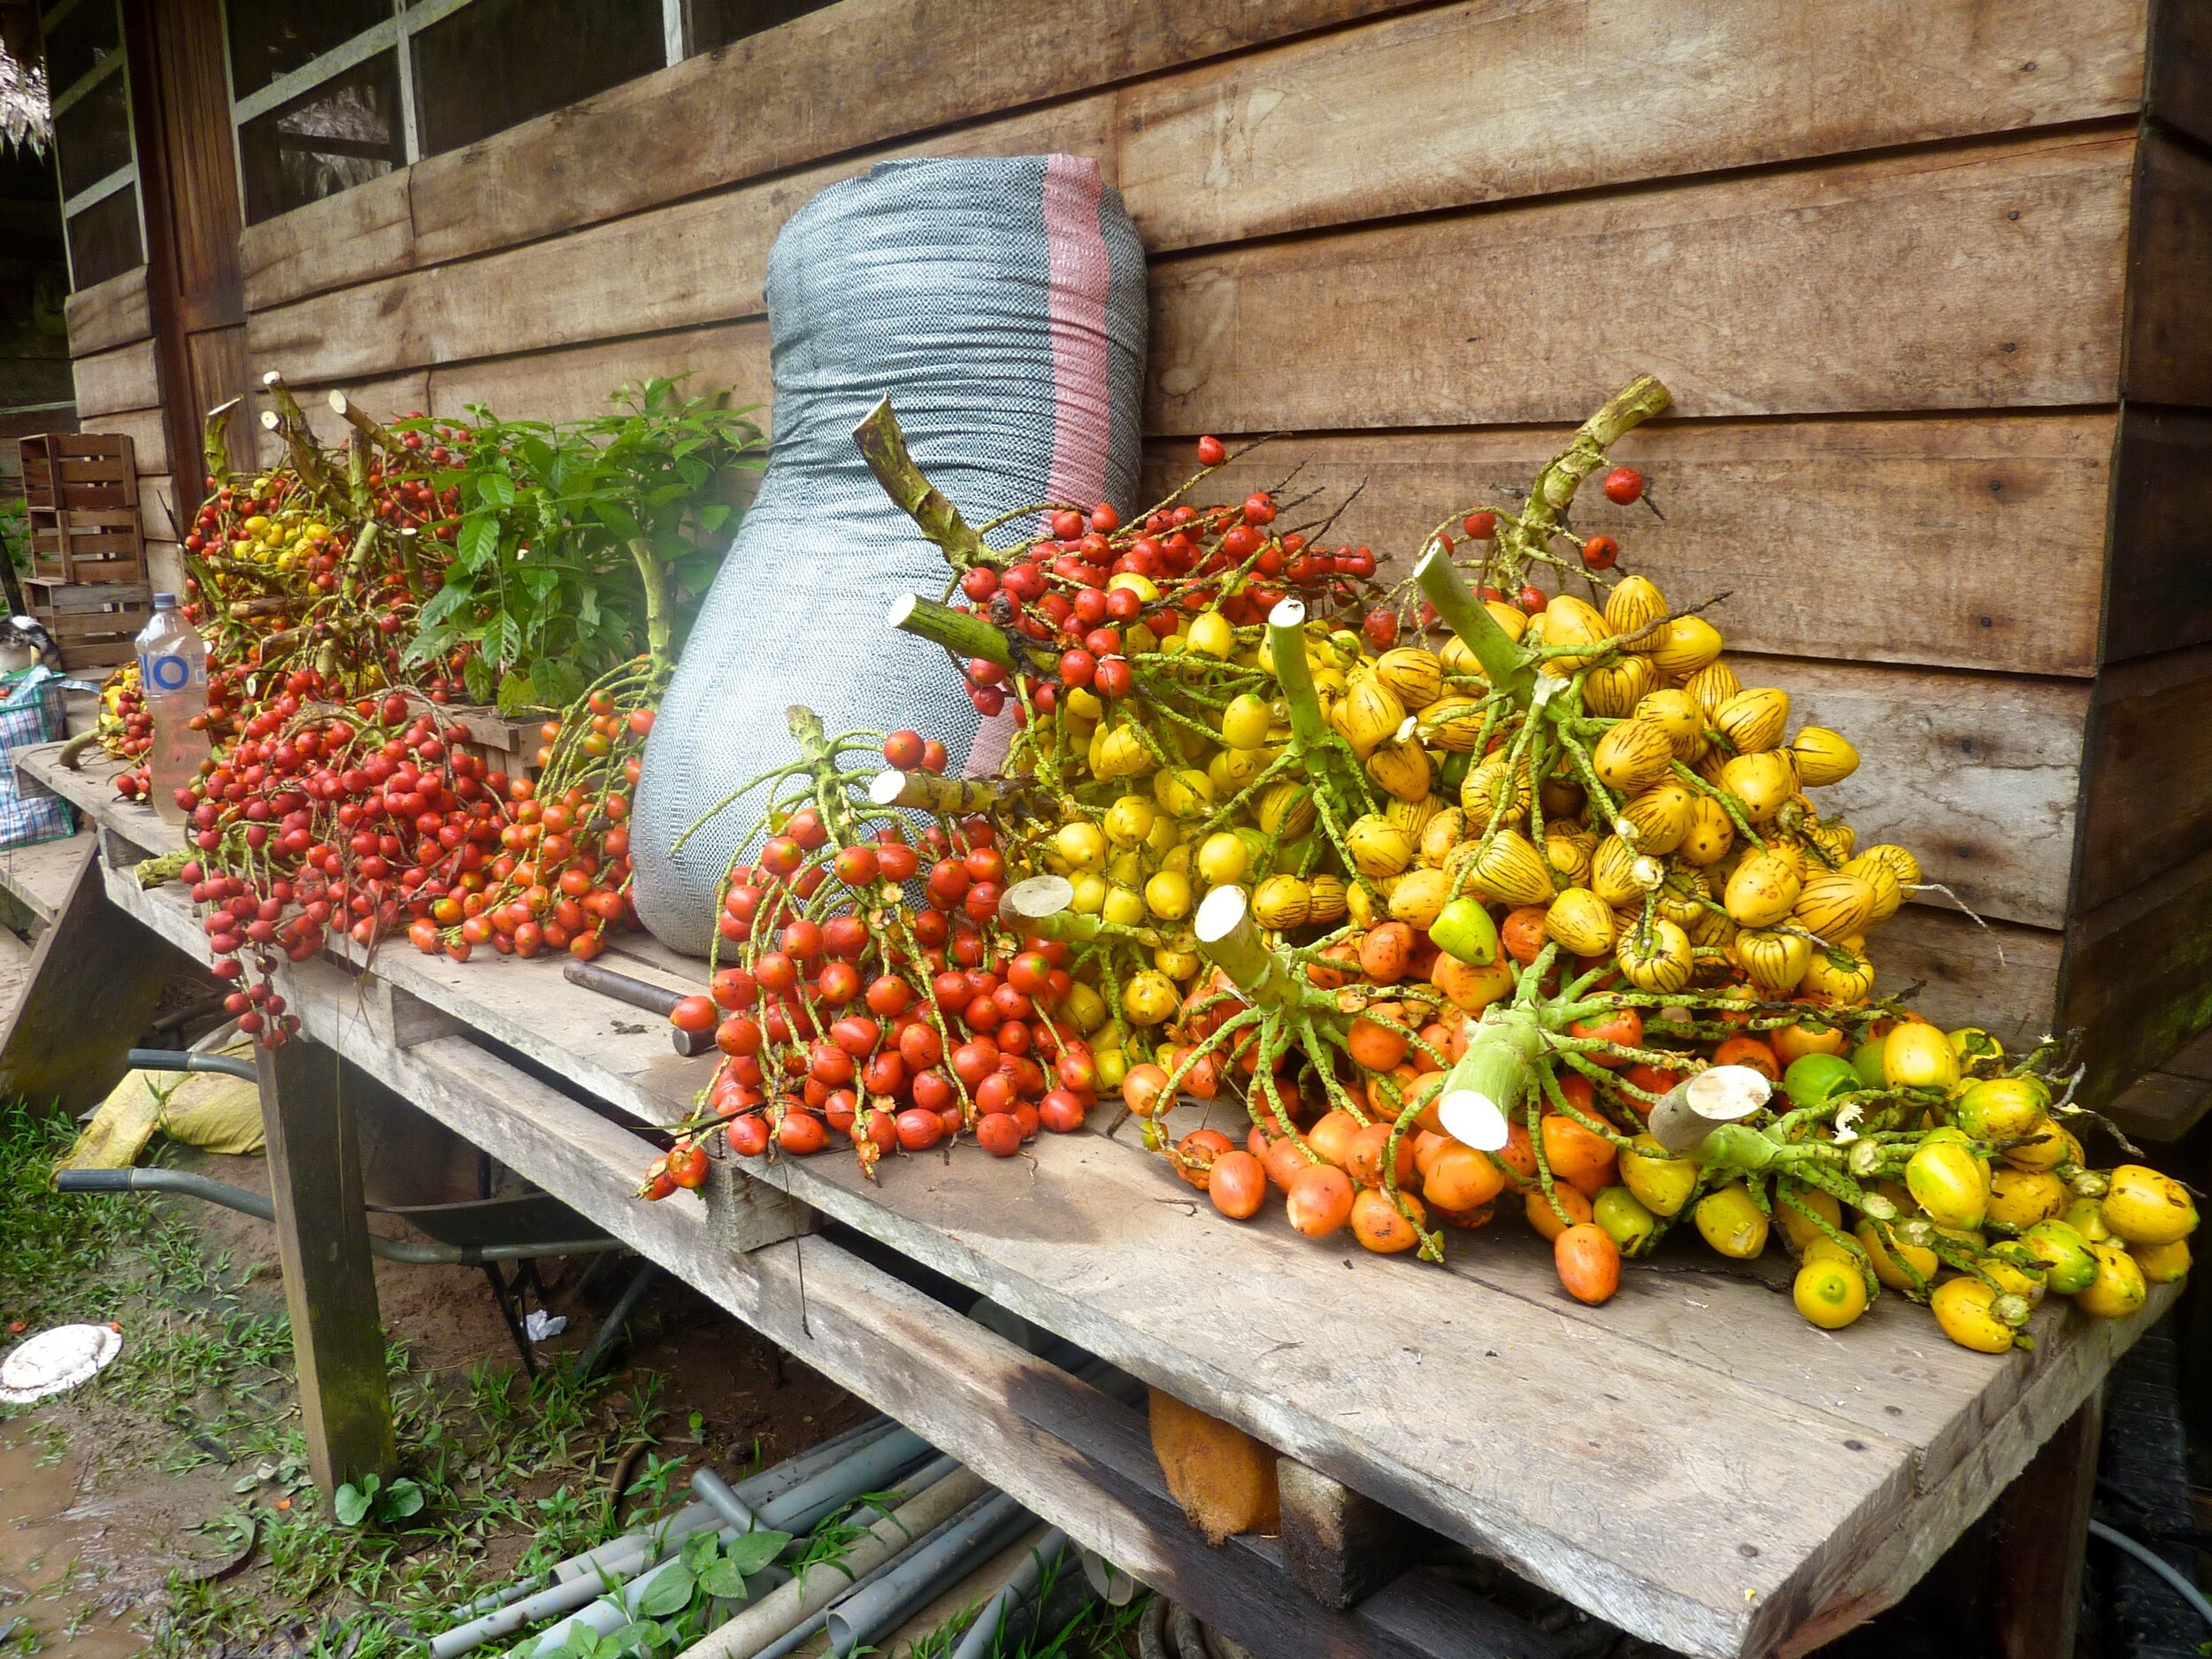 Pijuayo fruits come in various shapes, sizes, and colors. This is a typical weekly harvest at Camino Verde's reforestation center in Tambopata, Peru.